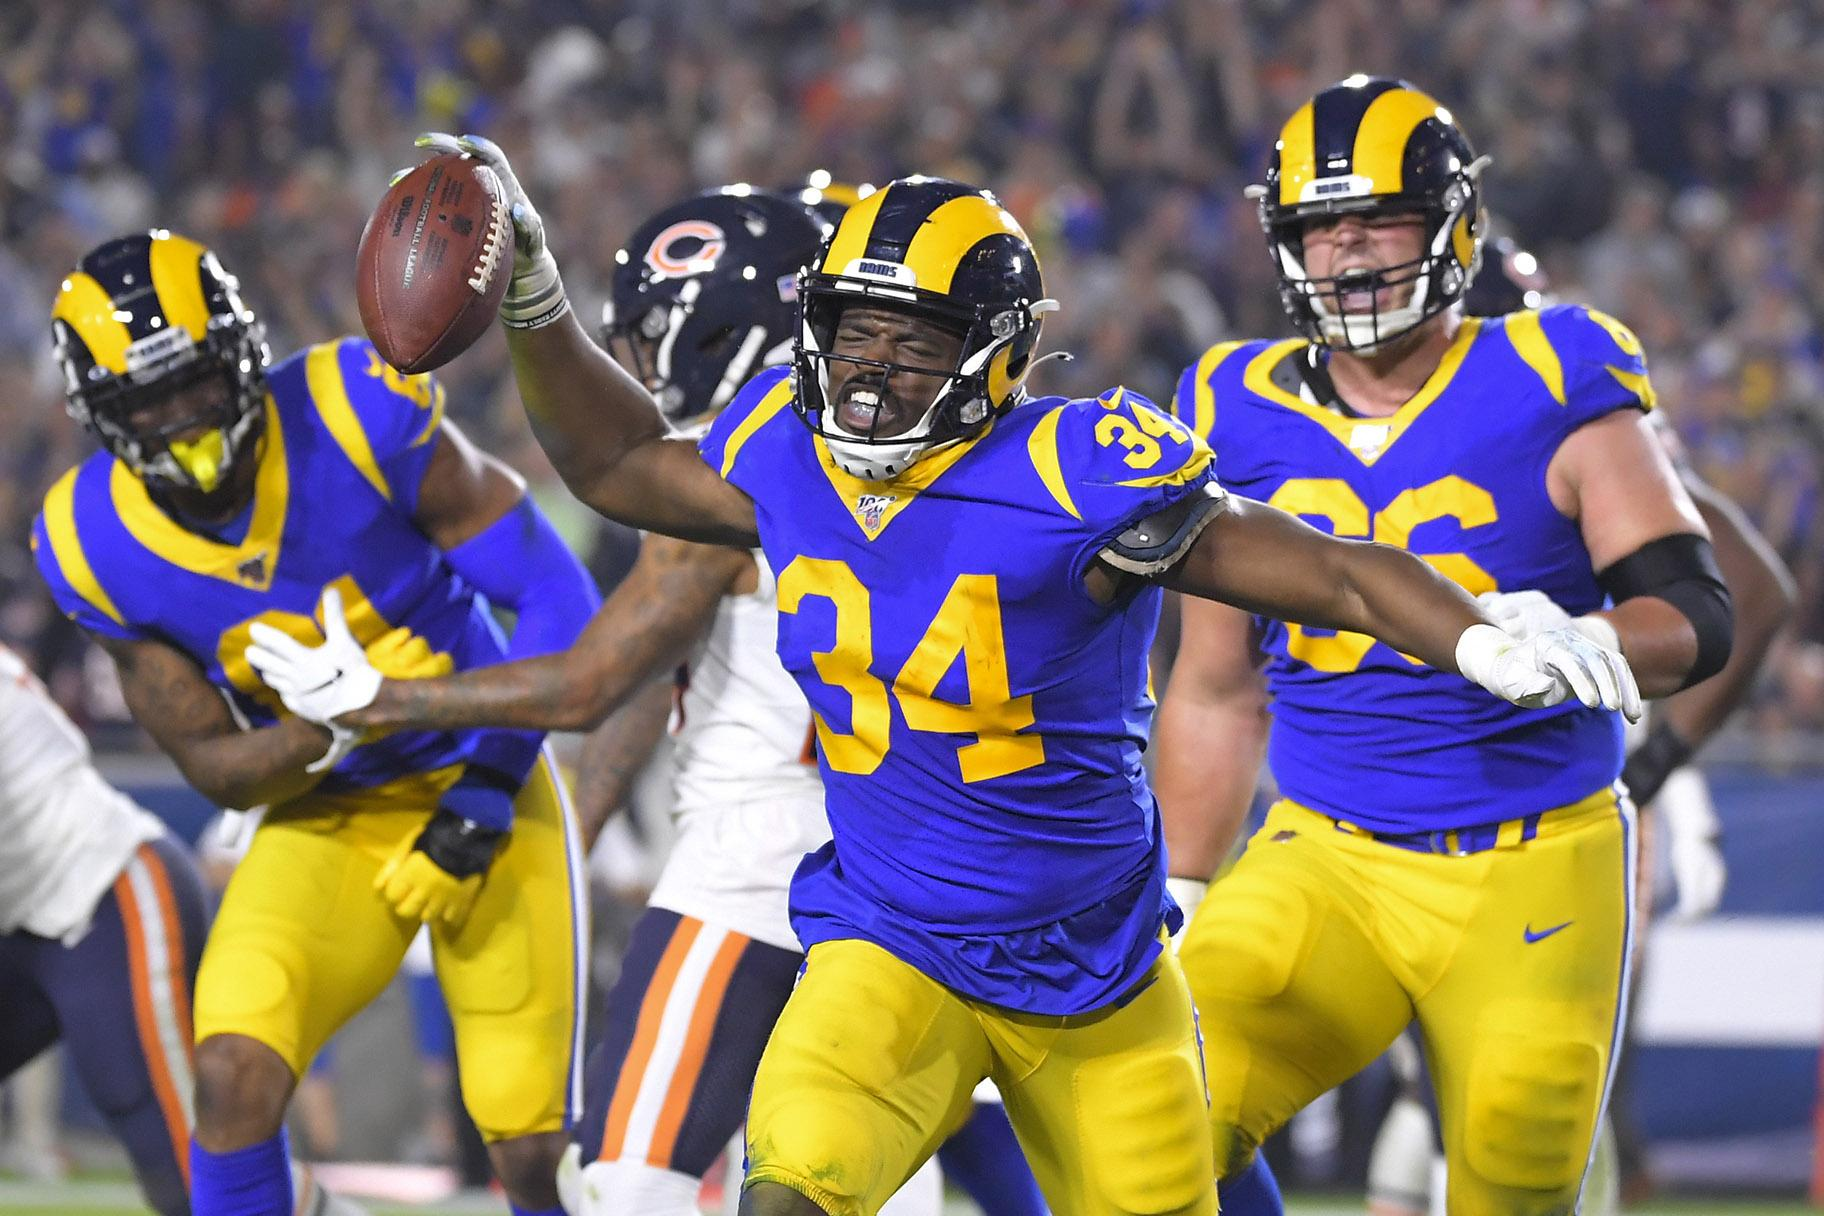 Los Angeles Rams running back Malcolm Brown celebrates after scoring against the Chicago Bears during the second half of an NFL football game Sunday, Nov. 17, 2019, in Los Angeles. (AP Photo / Mark J. Terrill)